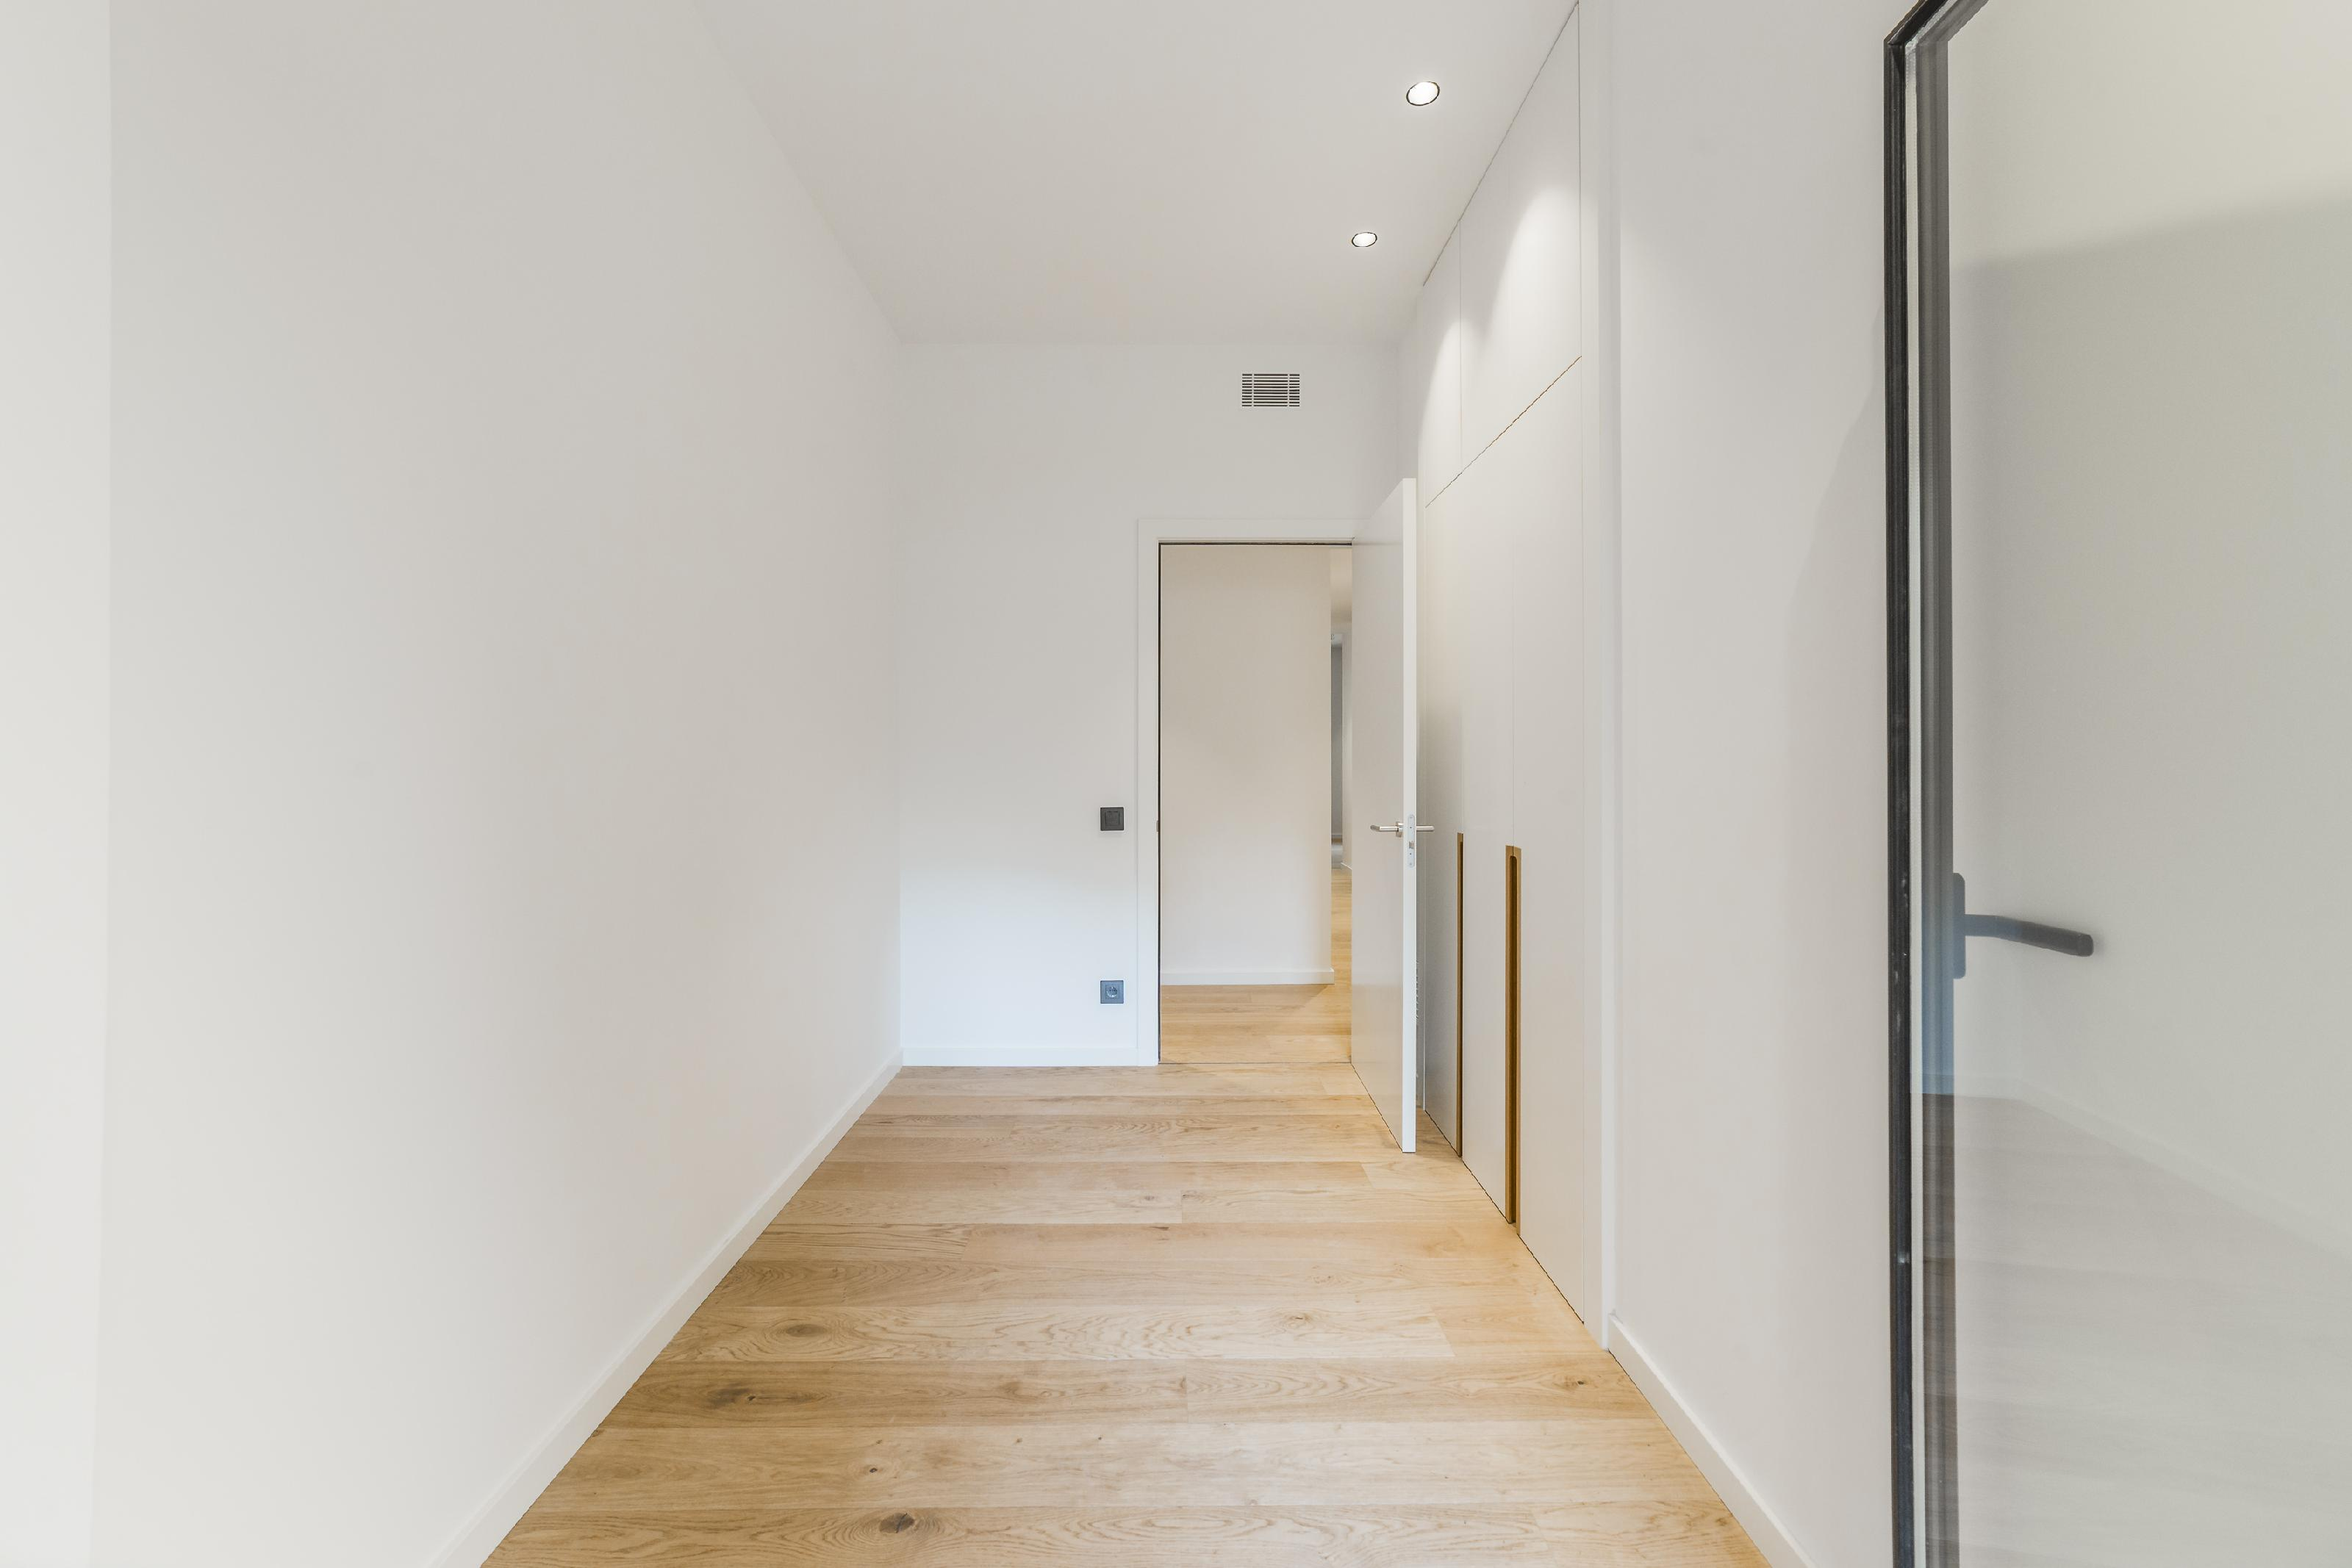 182176 Apartment for sale in Eixample, Old Left Eixample 25